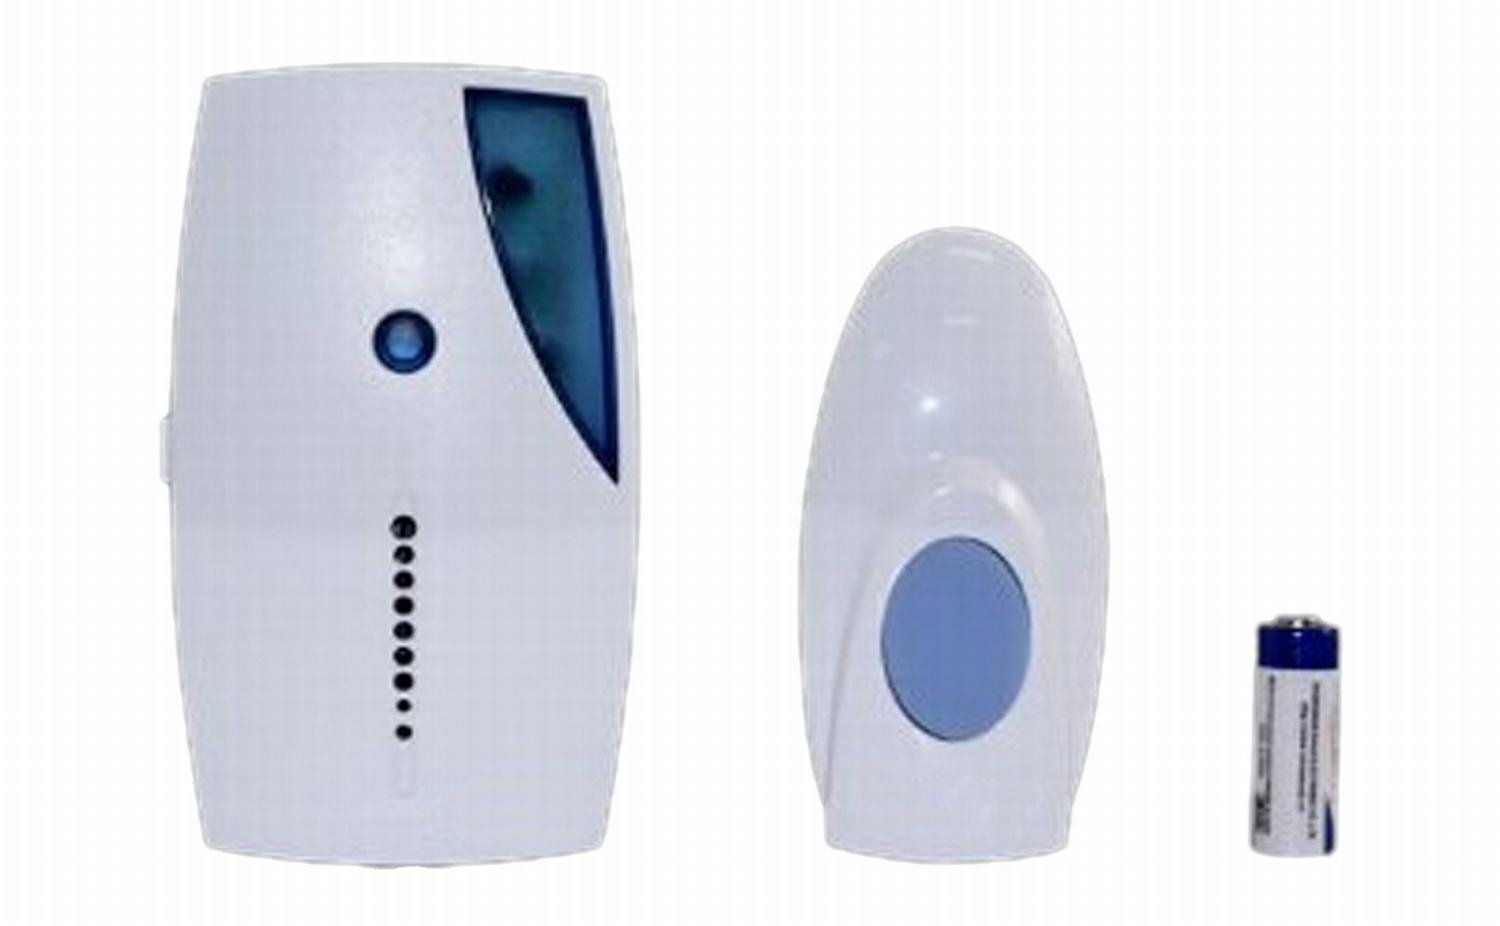 kits with chimes db bell button p kit in white wireless push plug door